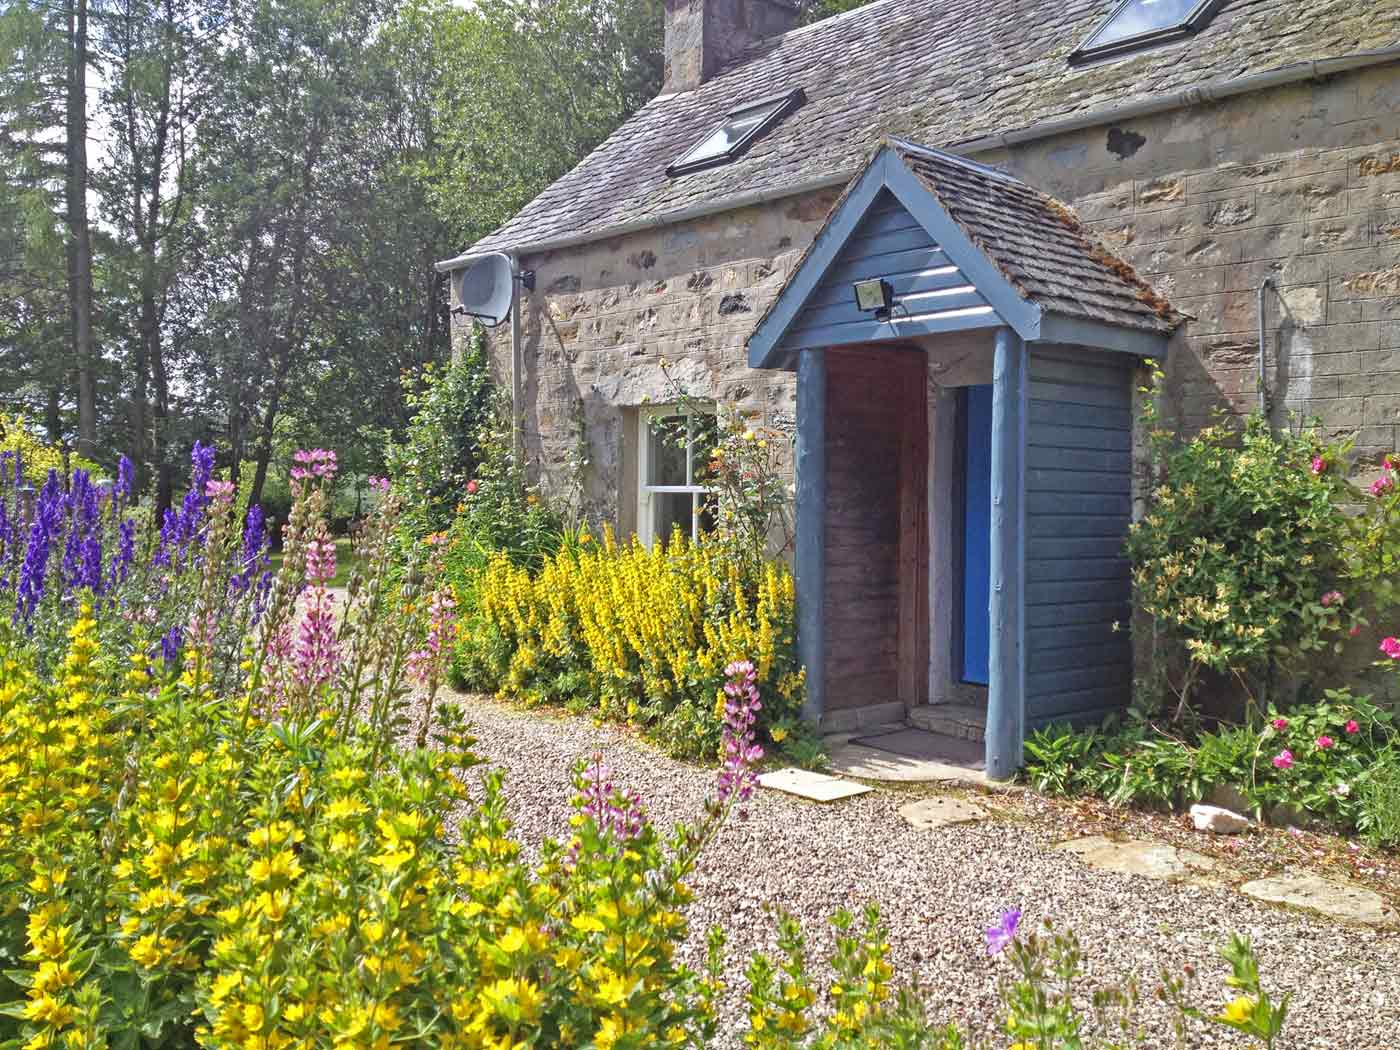 Rose Cottage with flowers